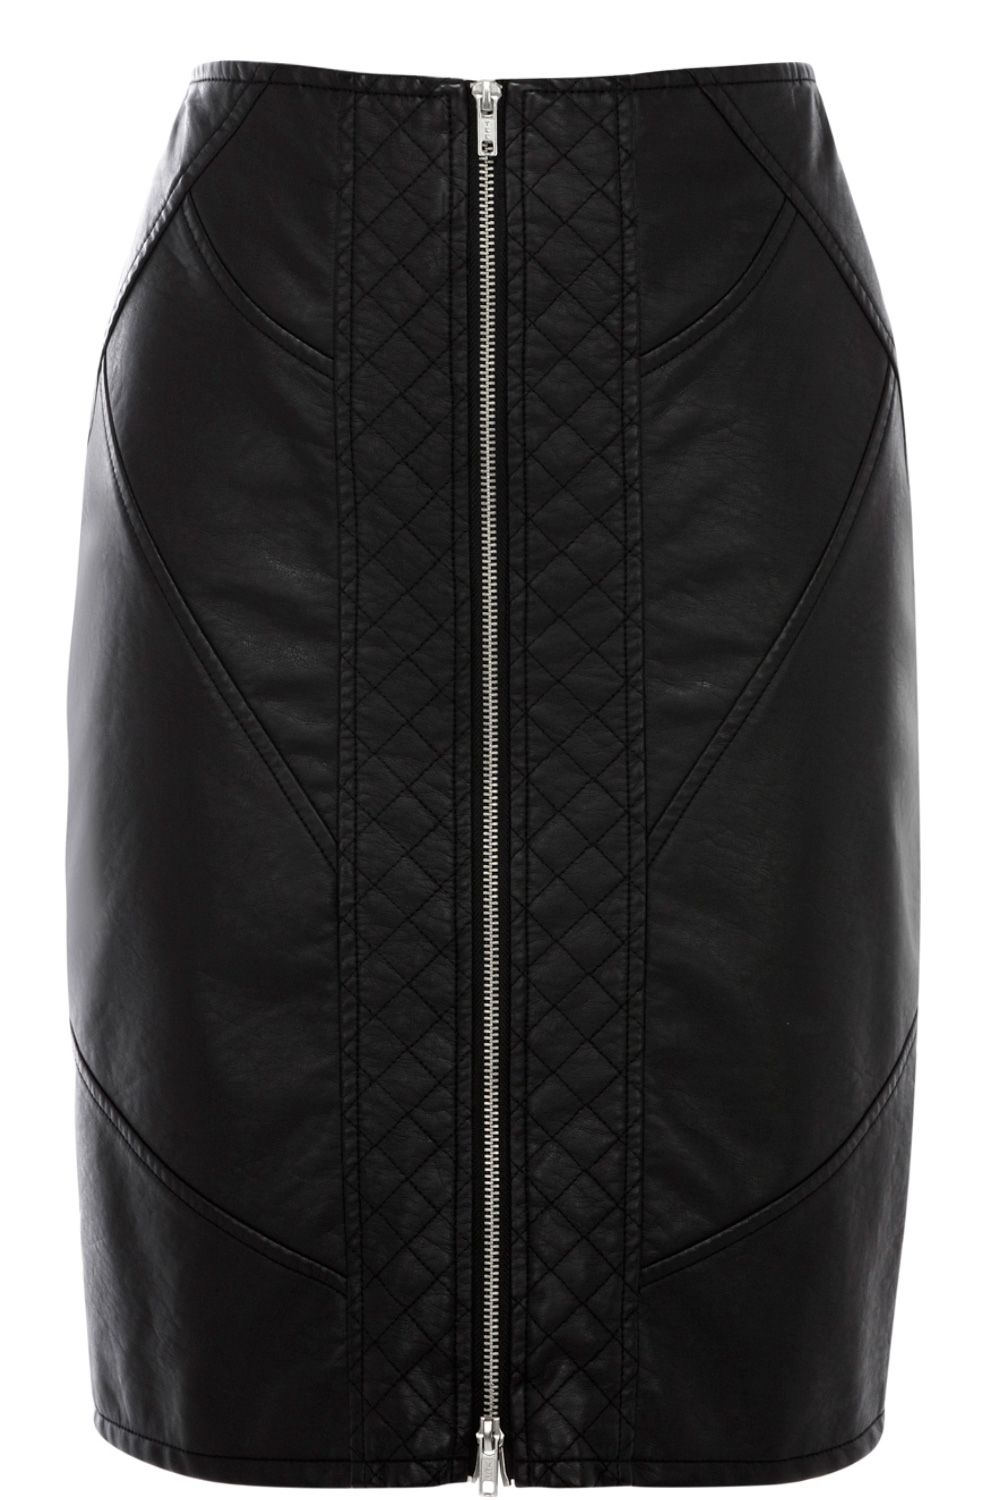 Faux leather quilted zip pencil skirt